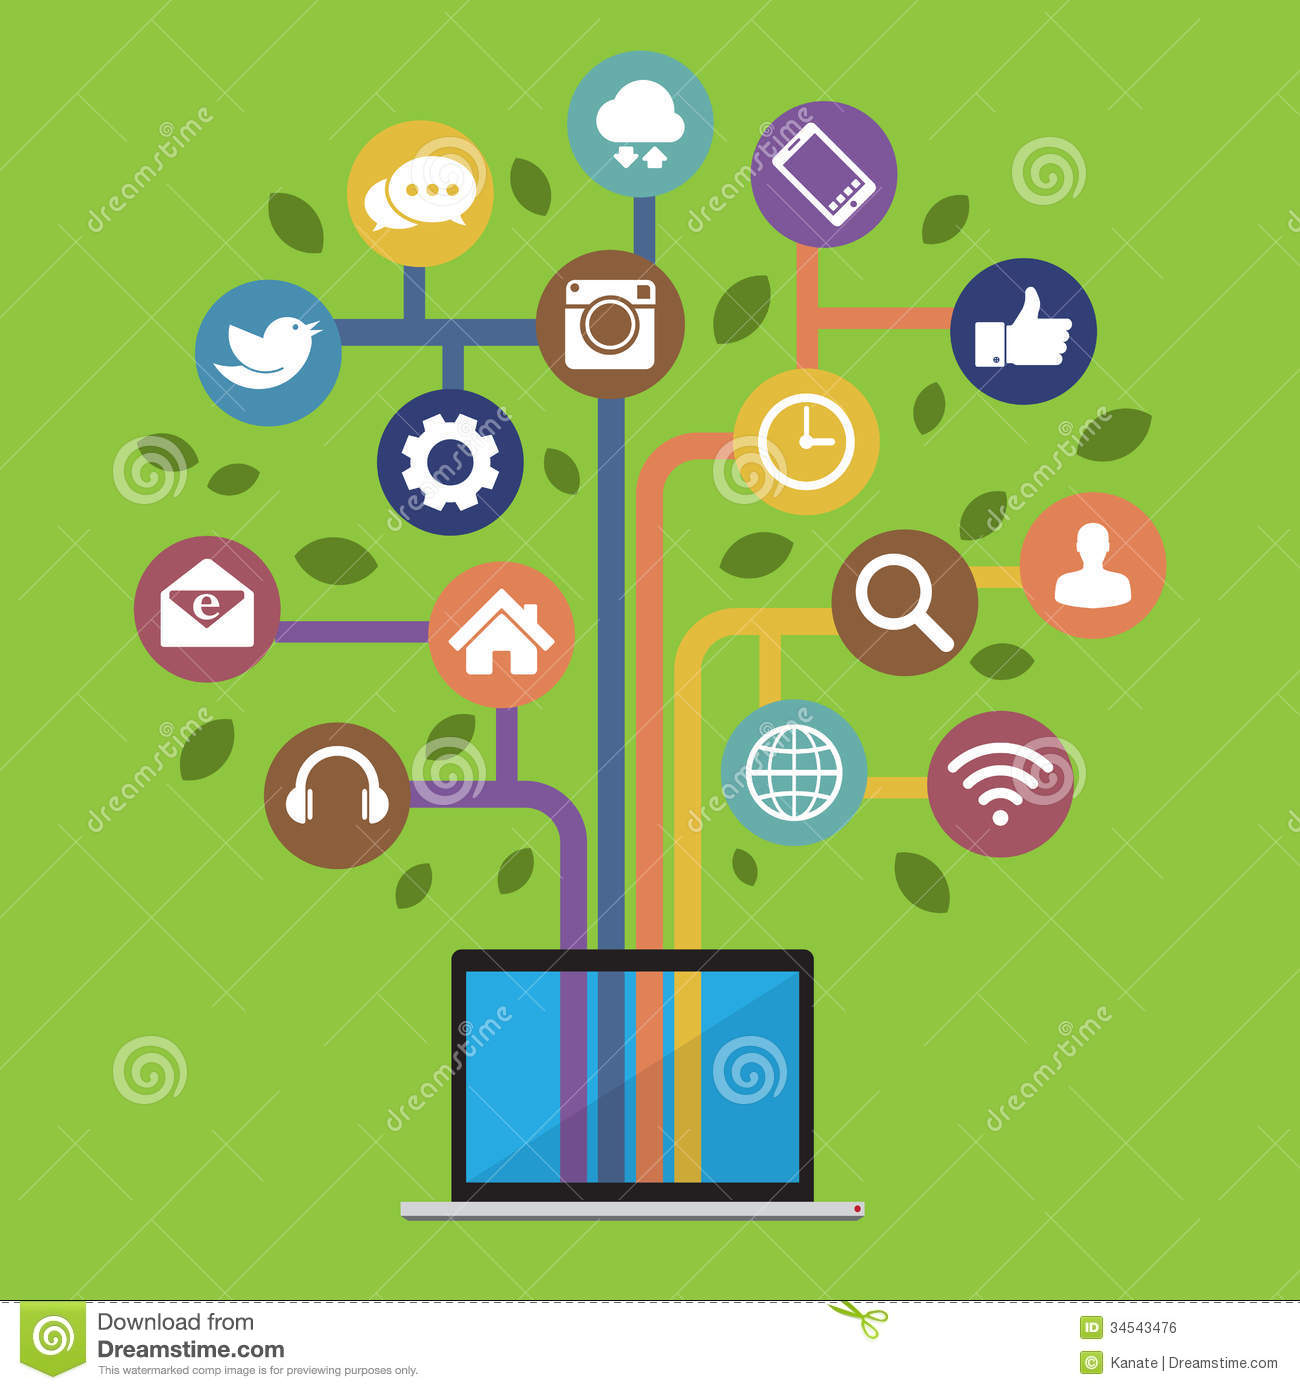 Social Media Icons with Computer